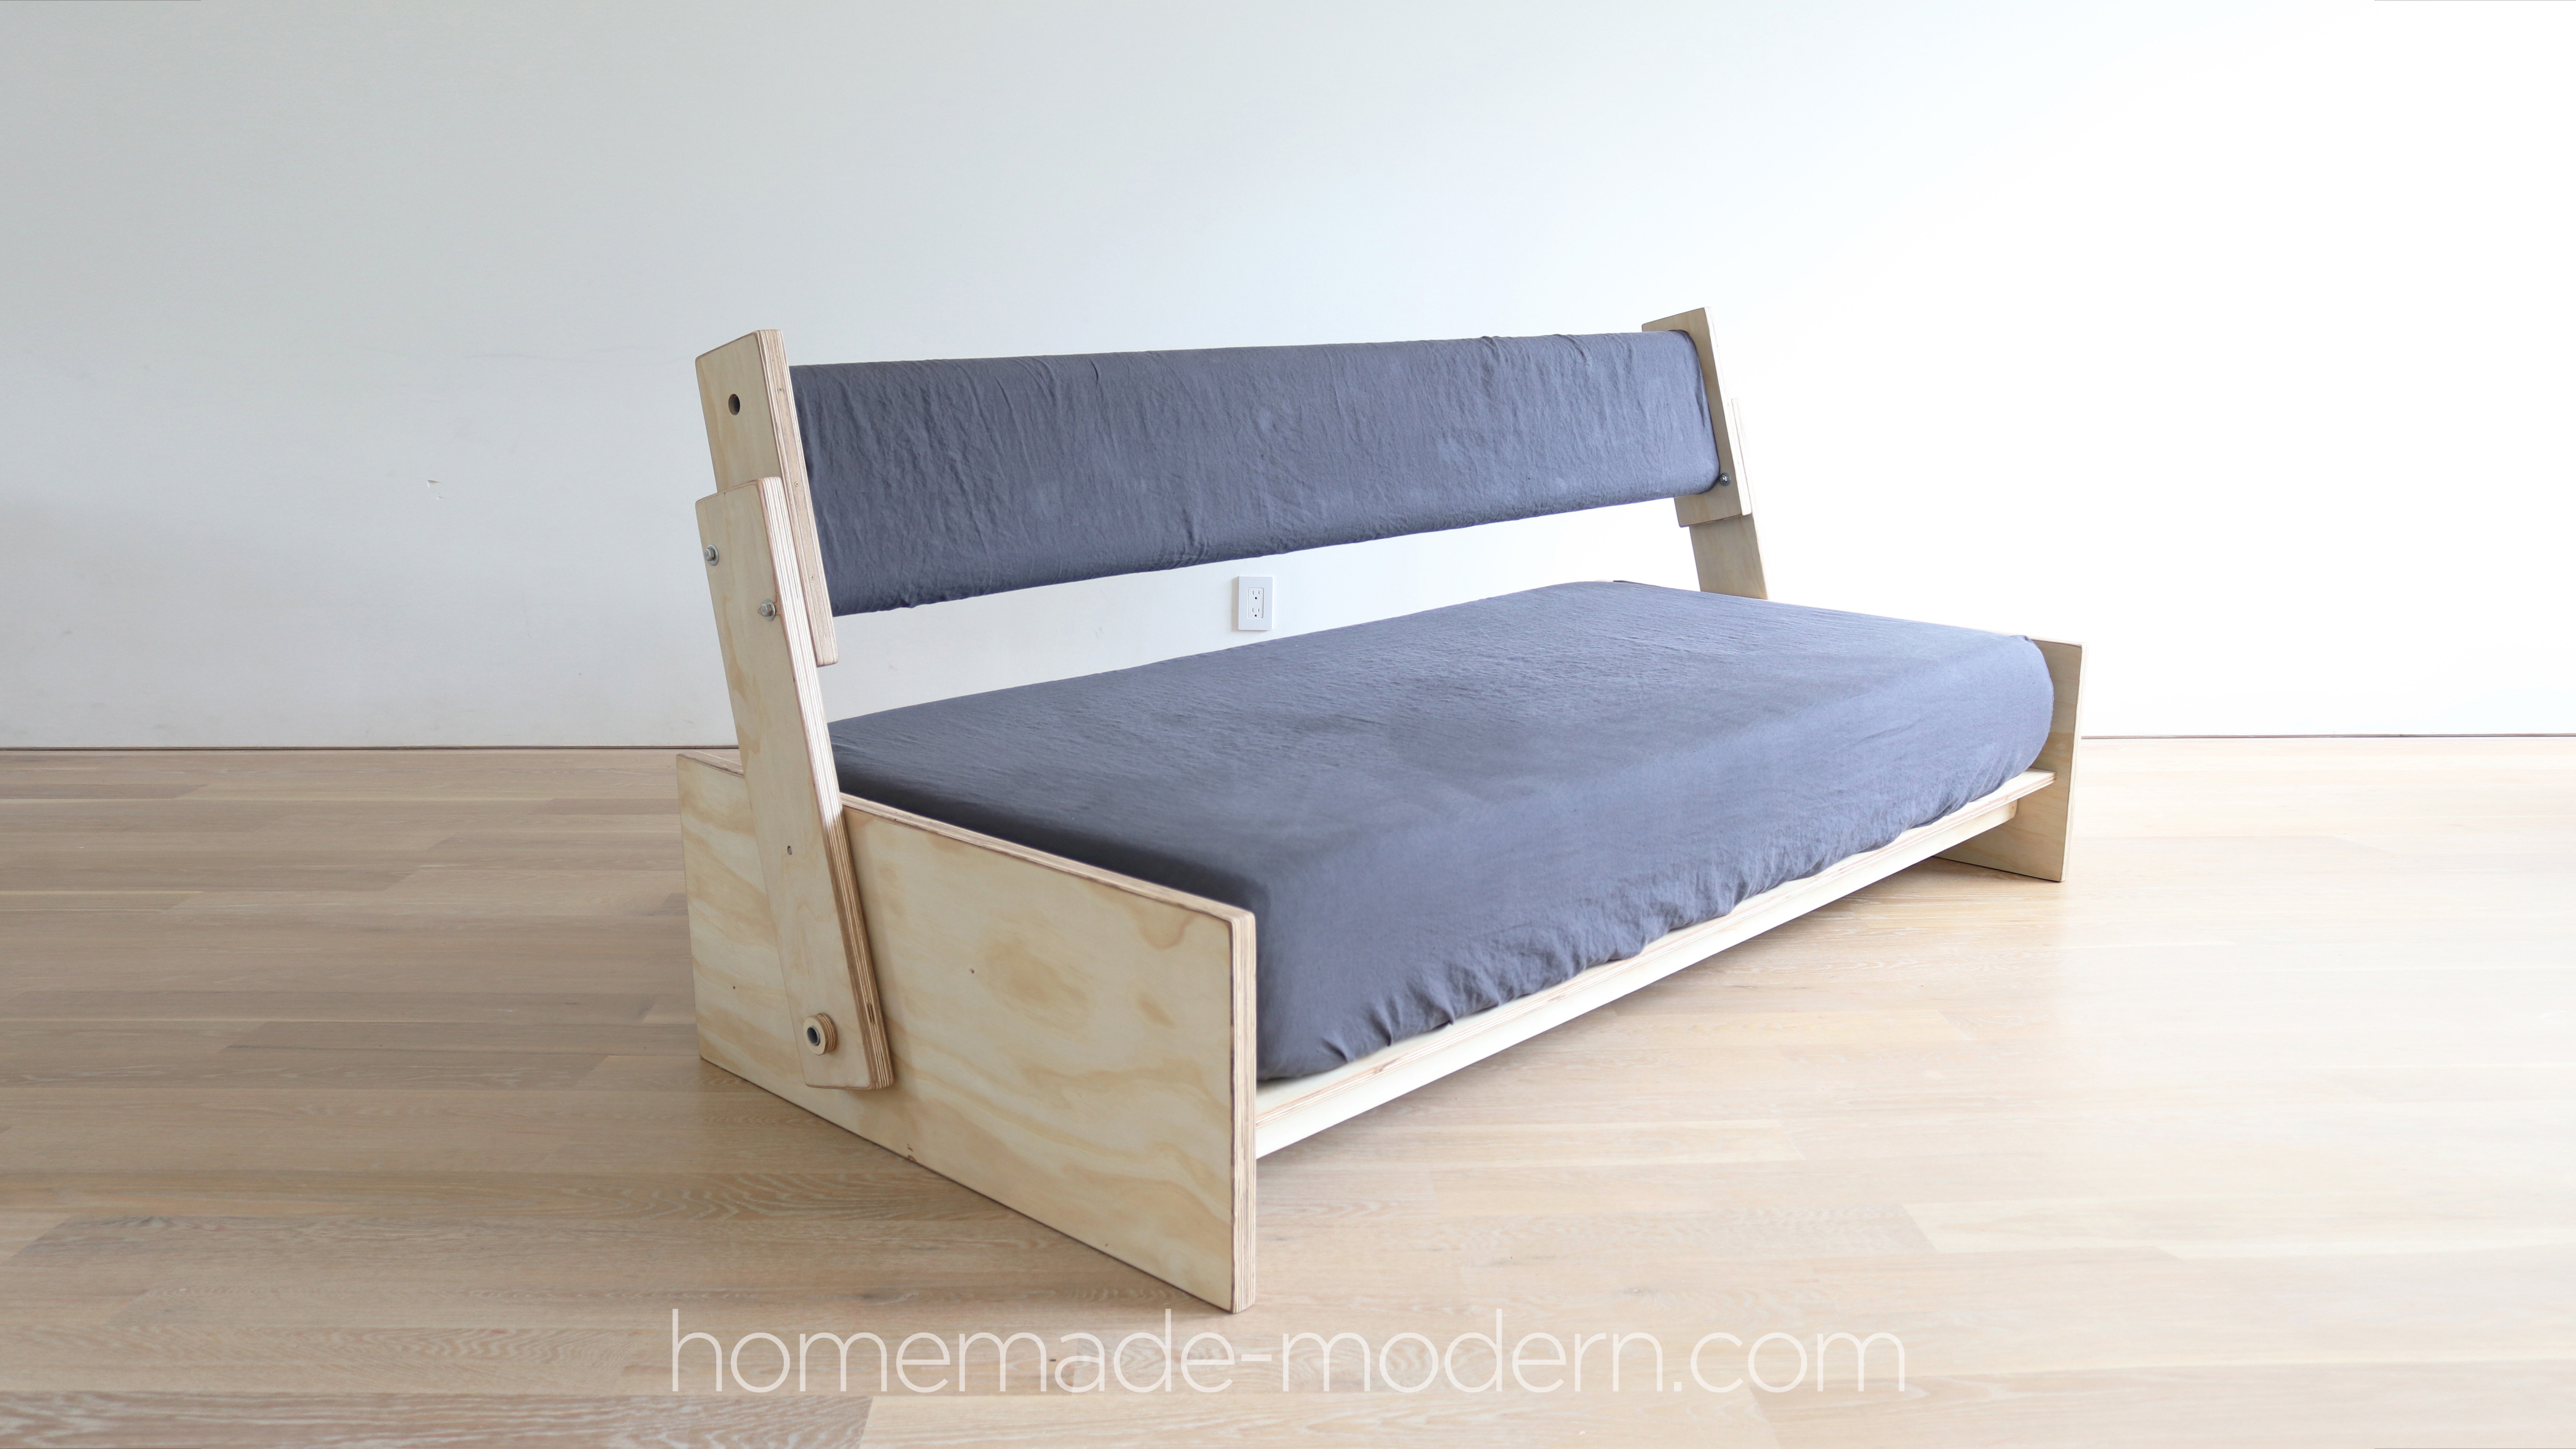 http://www.homemade-modern.com/wp-content/uploads/2020/04/sofabed-003.jpg